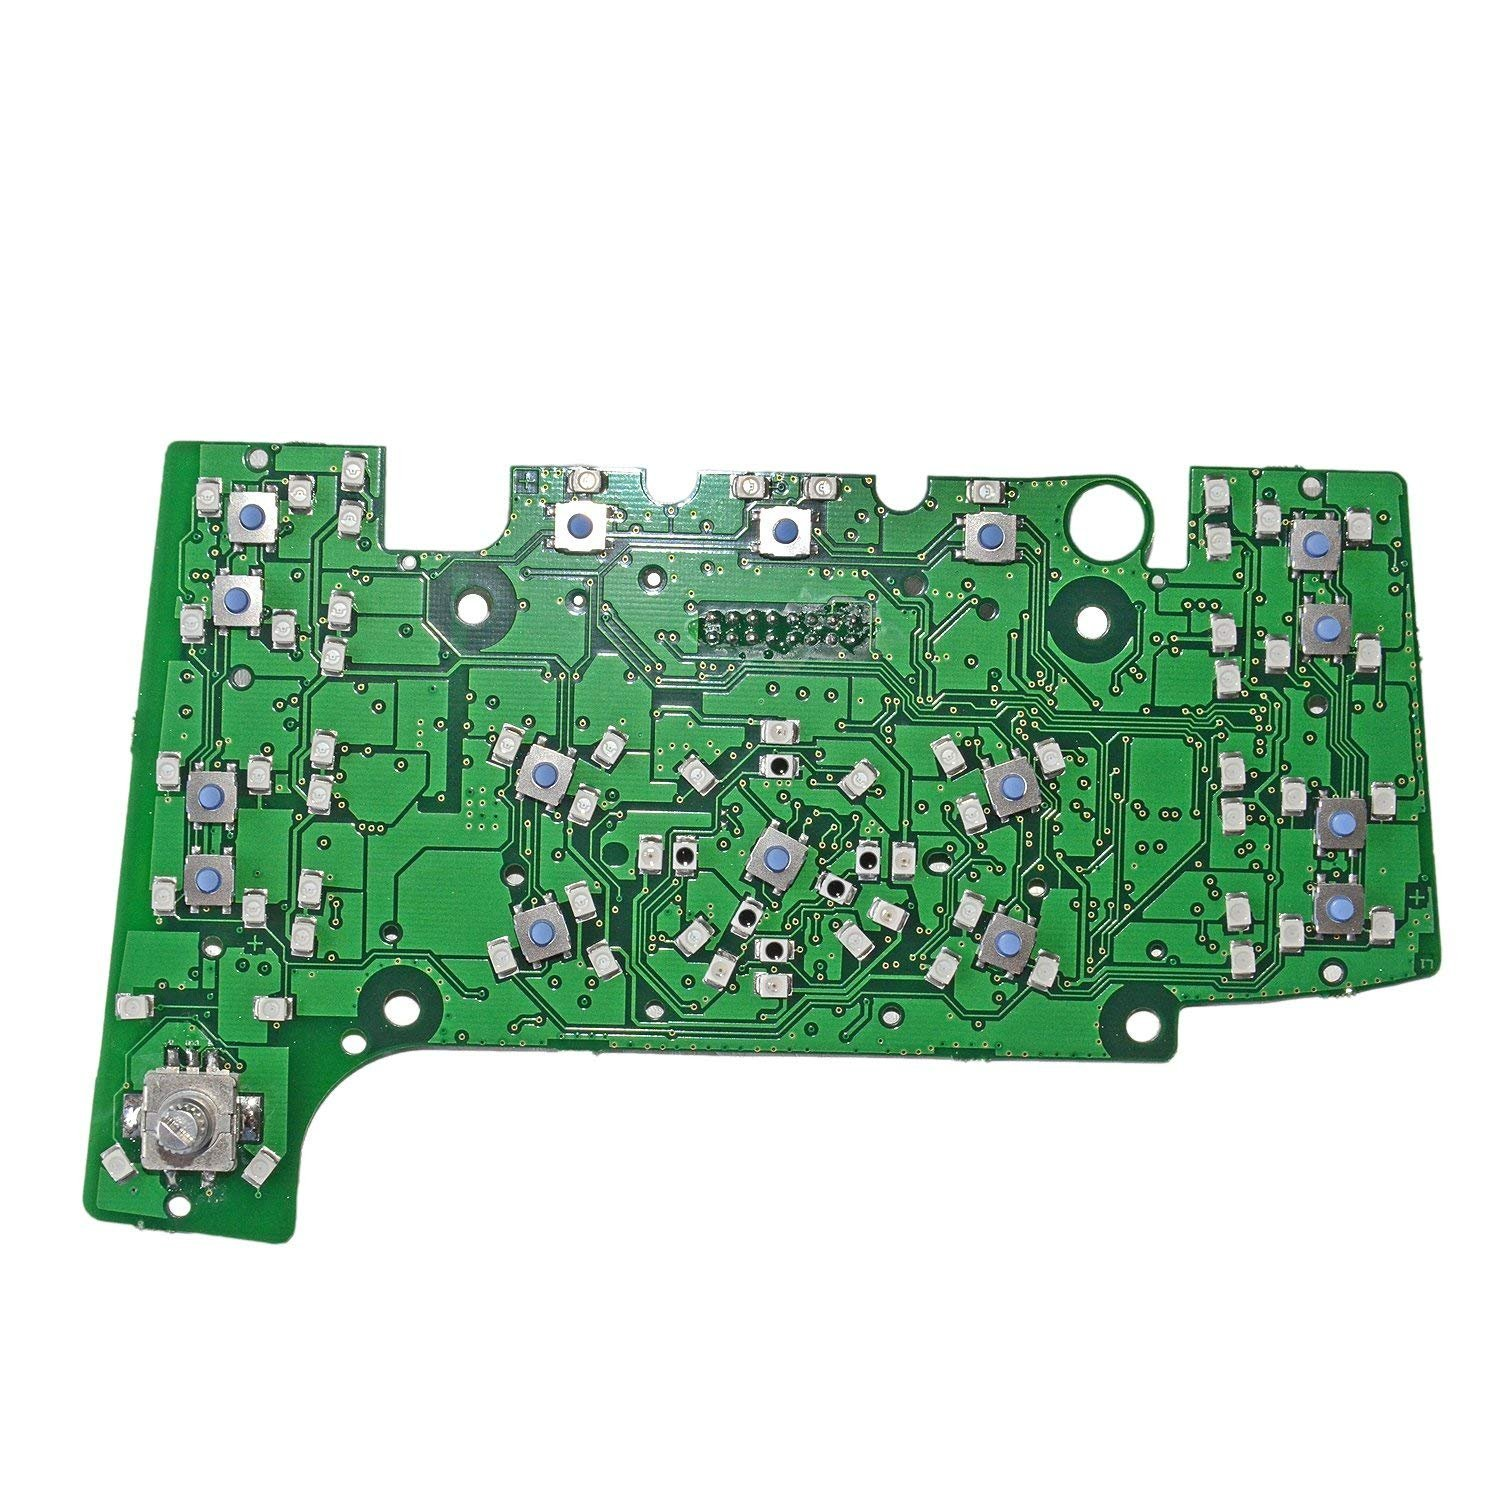 Multimedia MMI Control Panel Board with Navigation 4L0 919 610 KOVEBBLE